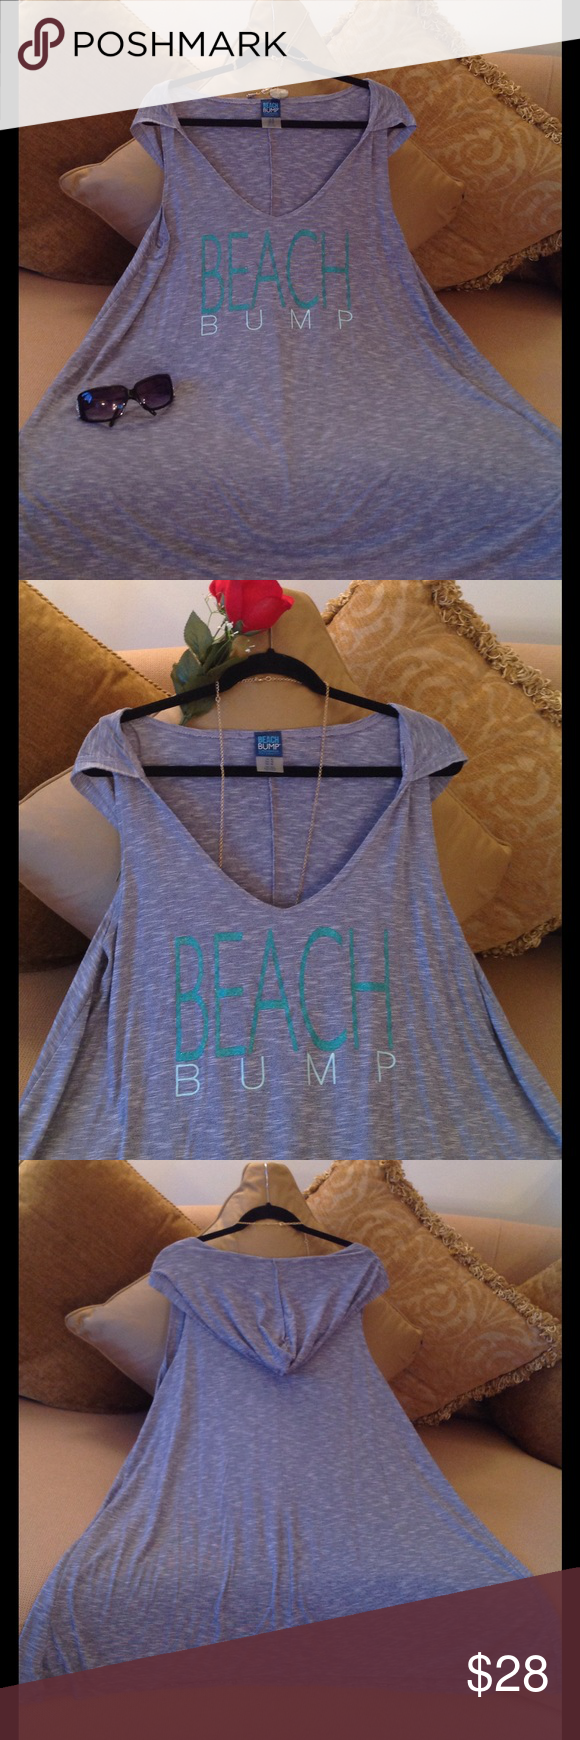 🍃🌹'BEACH BUMP' - By Motherhood Maternity Hoodie Super cute Top by Motherhood Maternity. Size XL. Excellent condition.  Tiny Blue and White stripes.  Very, very gently worn ☺️. No stains or snags.  Not only Perfect for the Beach but super cute with jewelry and Capri's for casual Saturday wear. Price is Firm!! Motherhood Maternity Tops